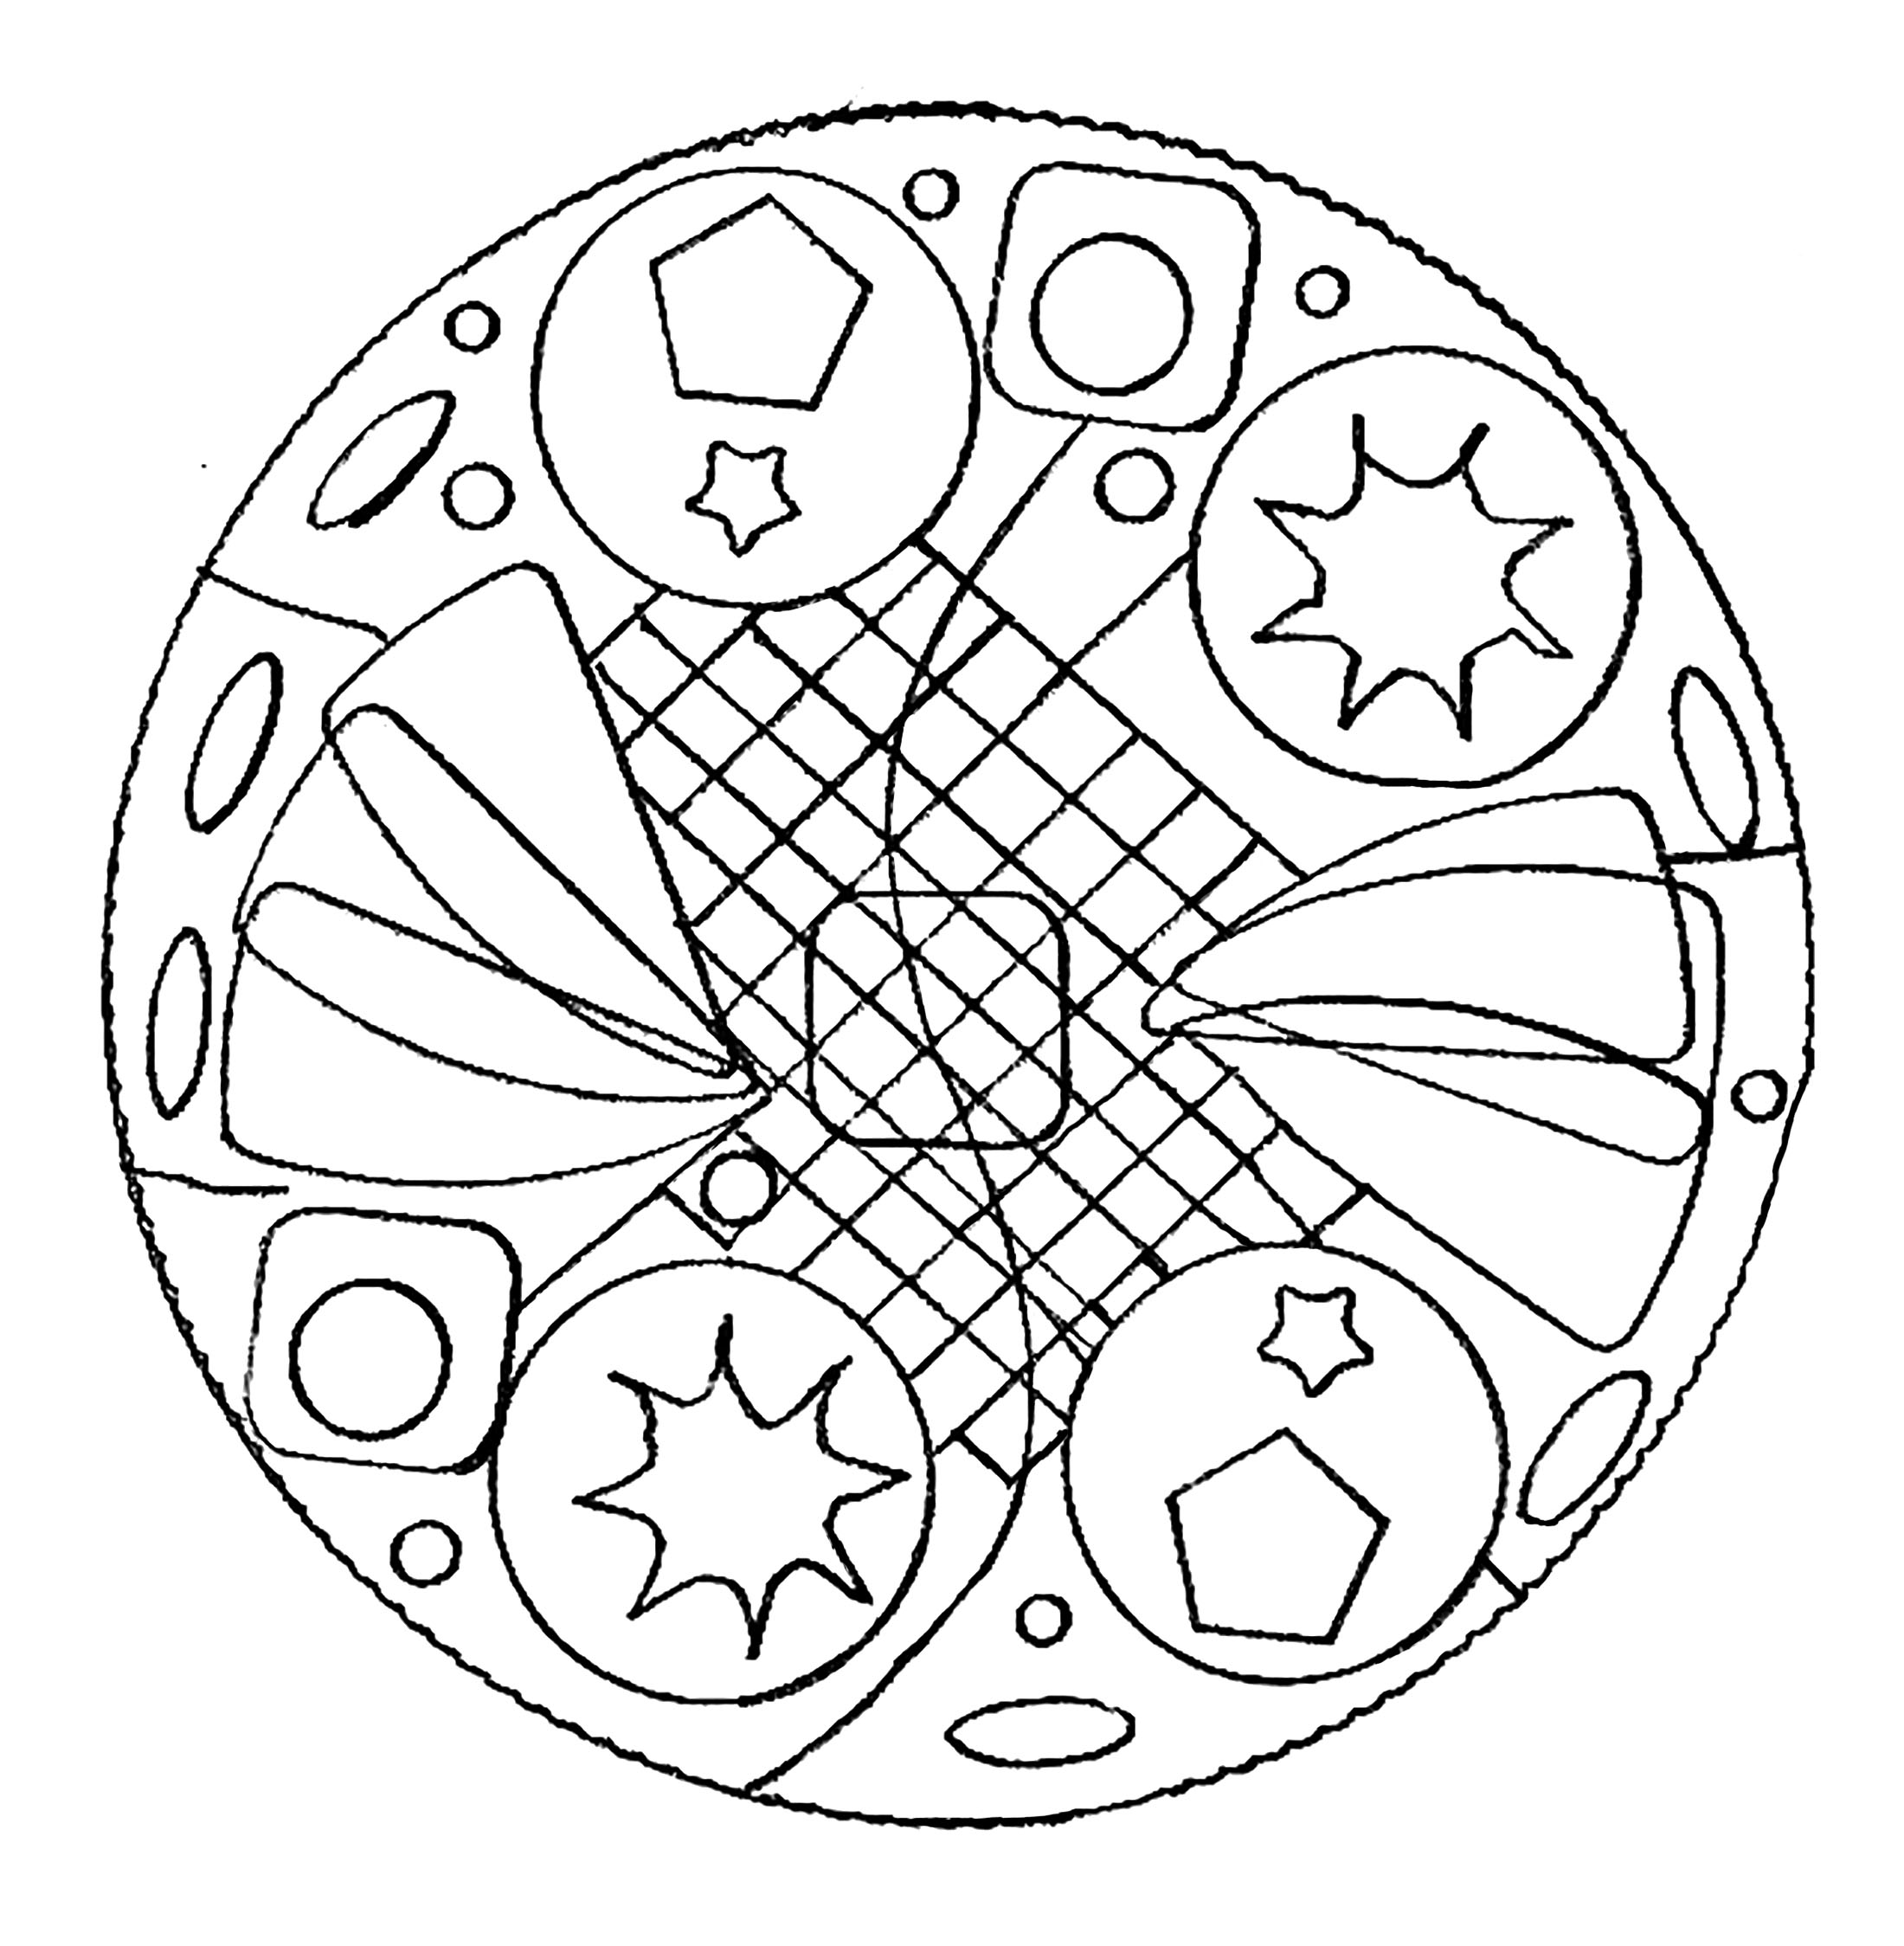 mandalas to color for adults 20 free printable mandala coloring pages for adults for color to mandalas adults